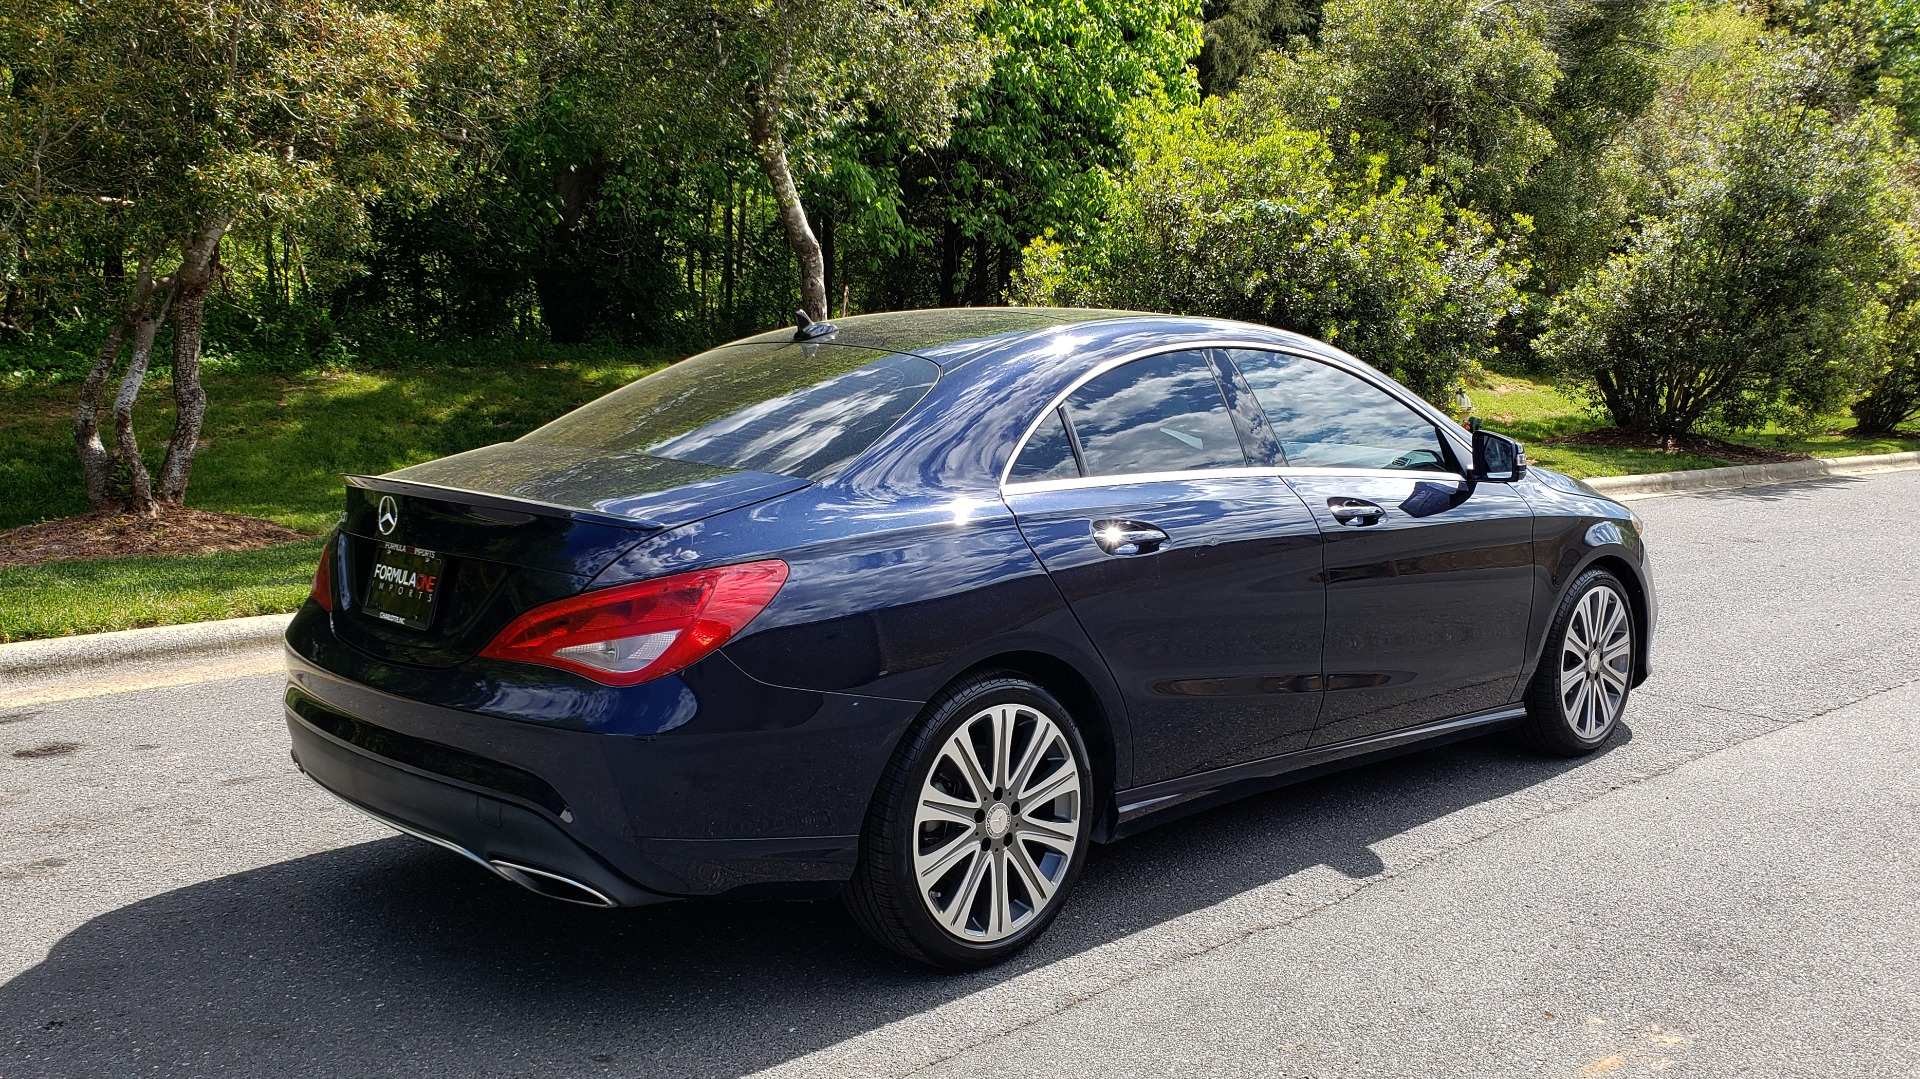 Used 2017 Mercedes-Benz CLA 250 PREMIUM / PANO-ROOF / HK SOUNDS / BSM / REARVIEW for sale Sold at Formula Imports in Charlotte NC 28227 6